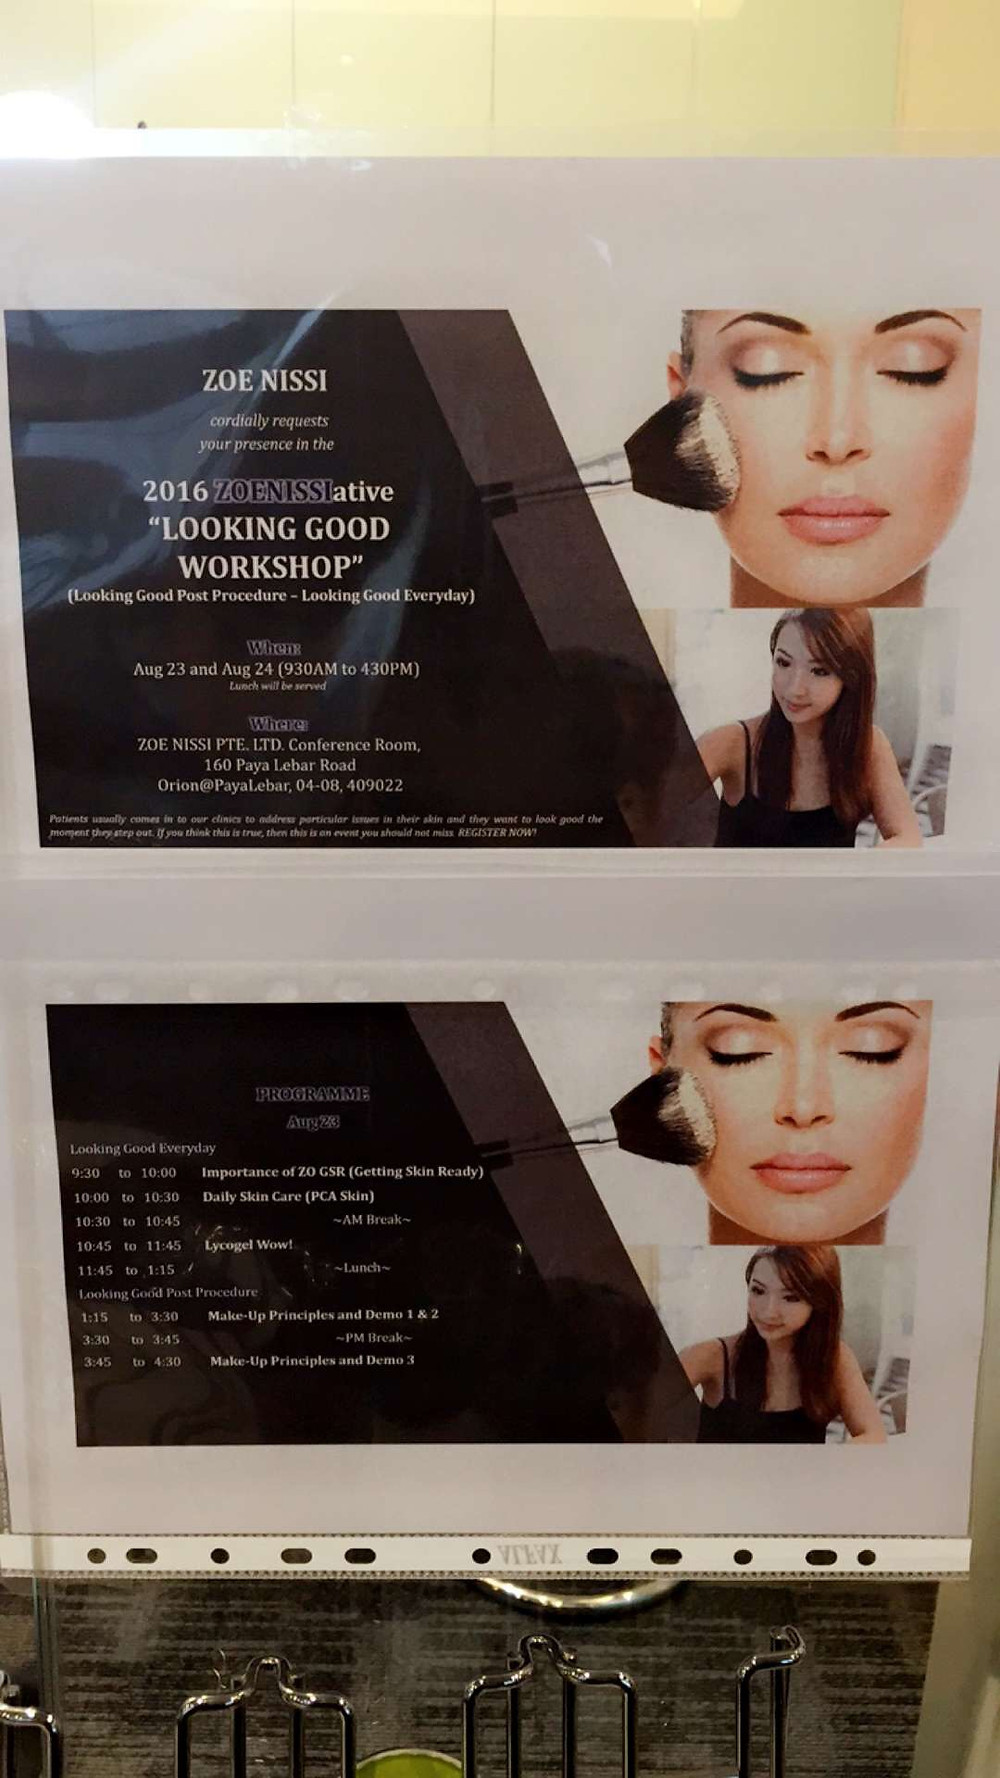 Held a 2 day Makeup Demo workshop with Zoe Nissi Pte Ltd at their office on 23rd & 24th August.